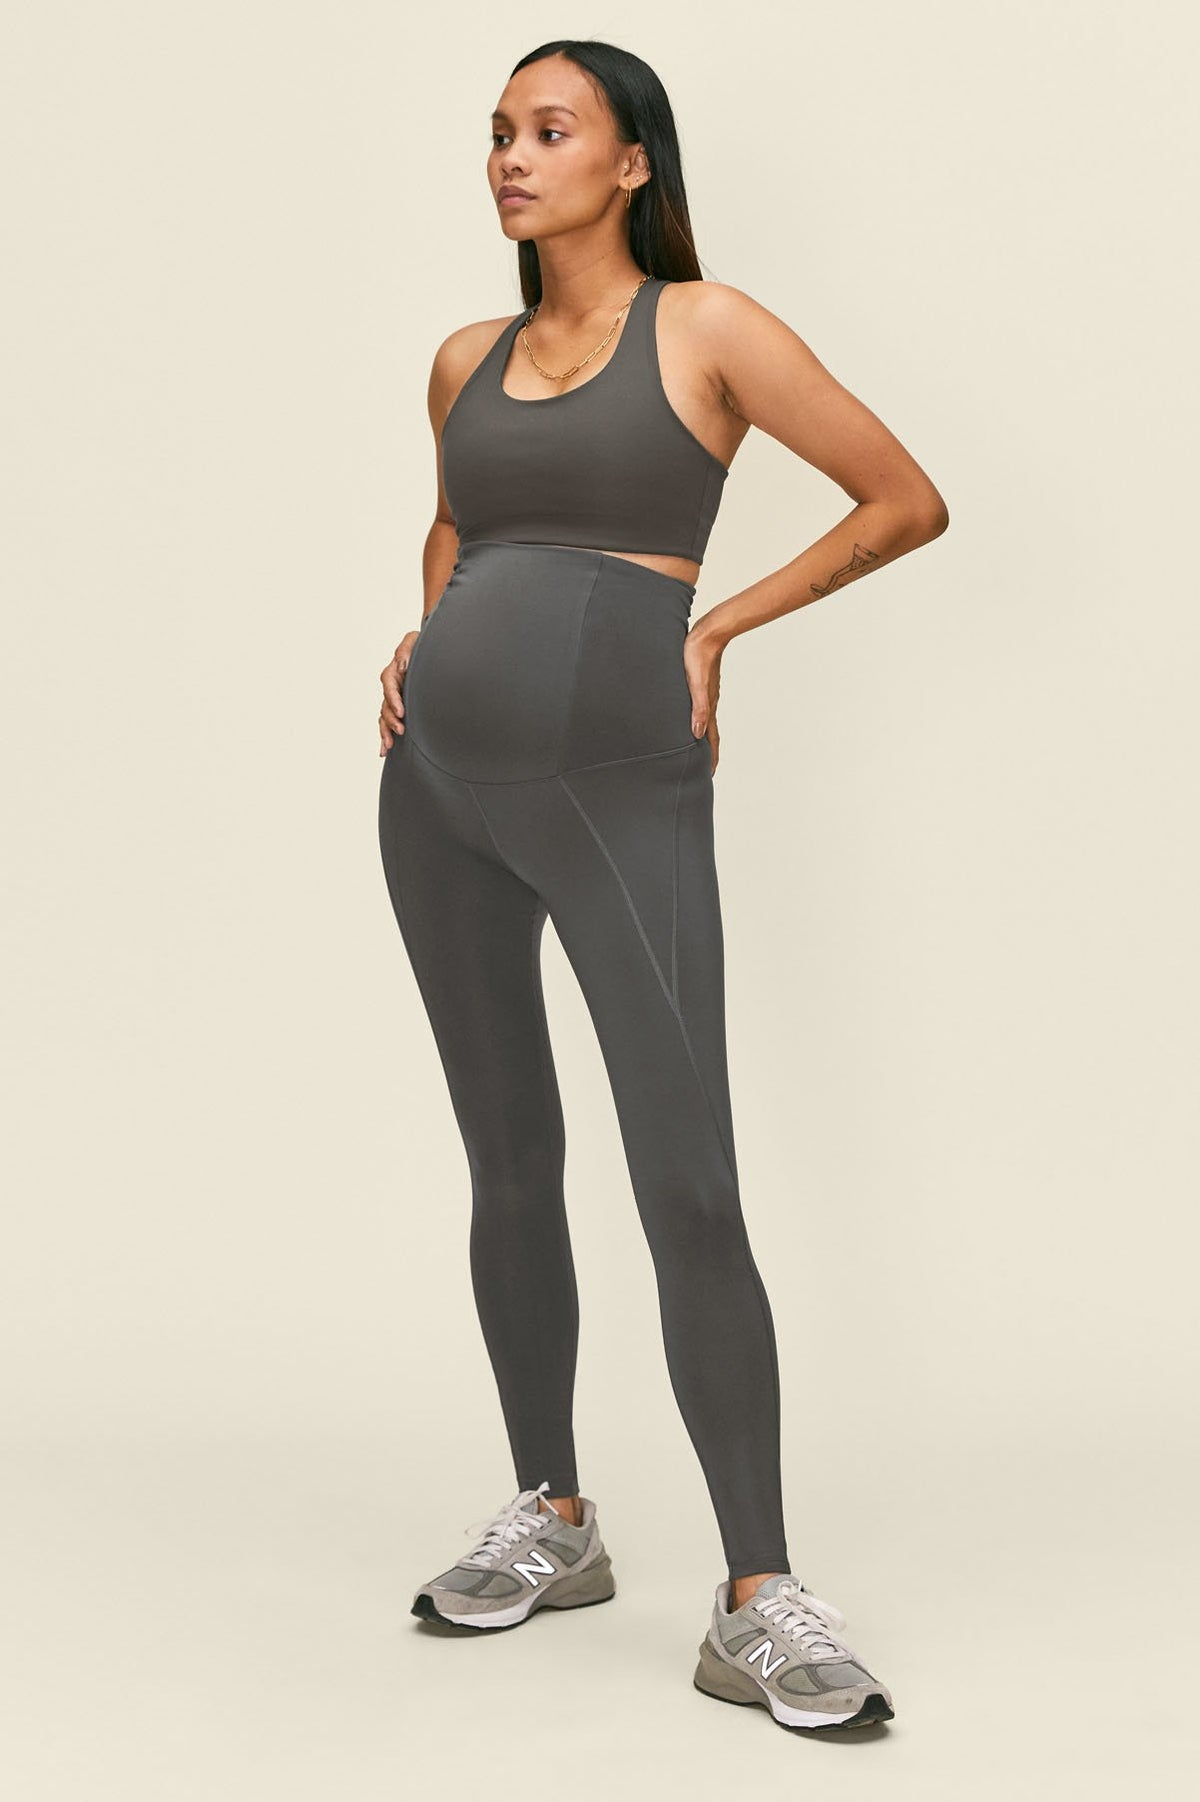 Girlfriend Collective Smoke Maternity Legging In Gray